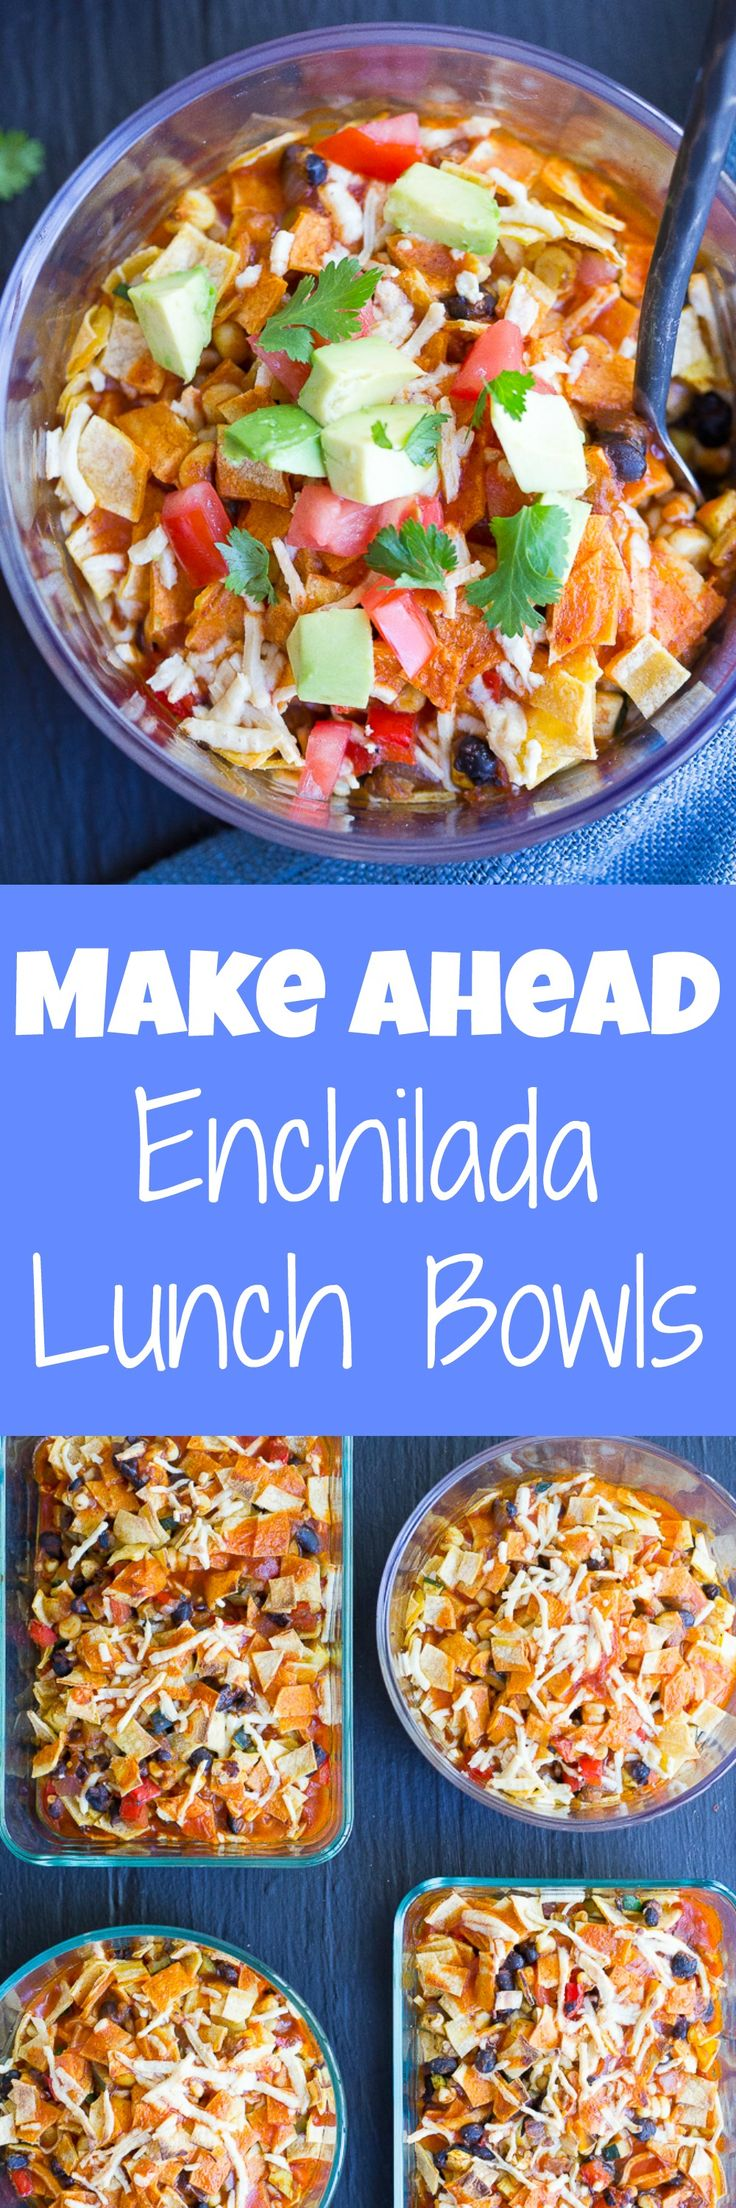 Make Ahead Enchilada Lunch Bowls - Make these on Sunday and you'll have lunch for the whole week!  They're easy, healthy, filling and flavorful!  Gluten free and vegan too! (Gluten Free Recipes Casserole)